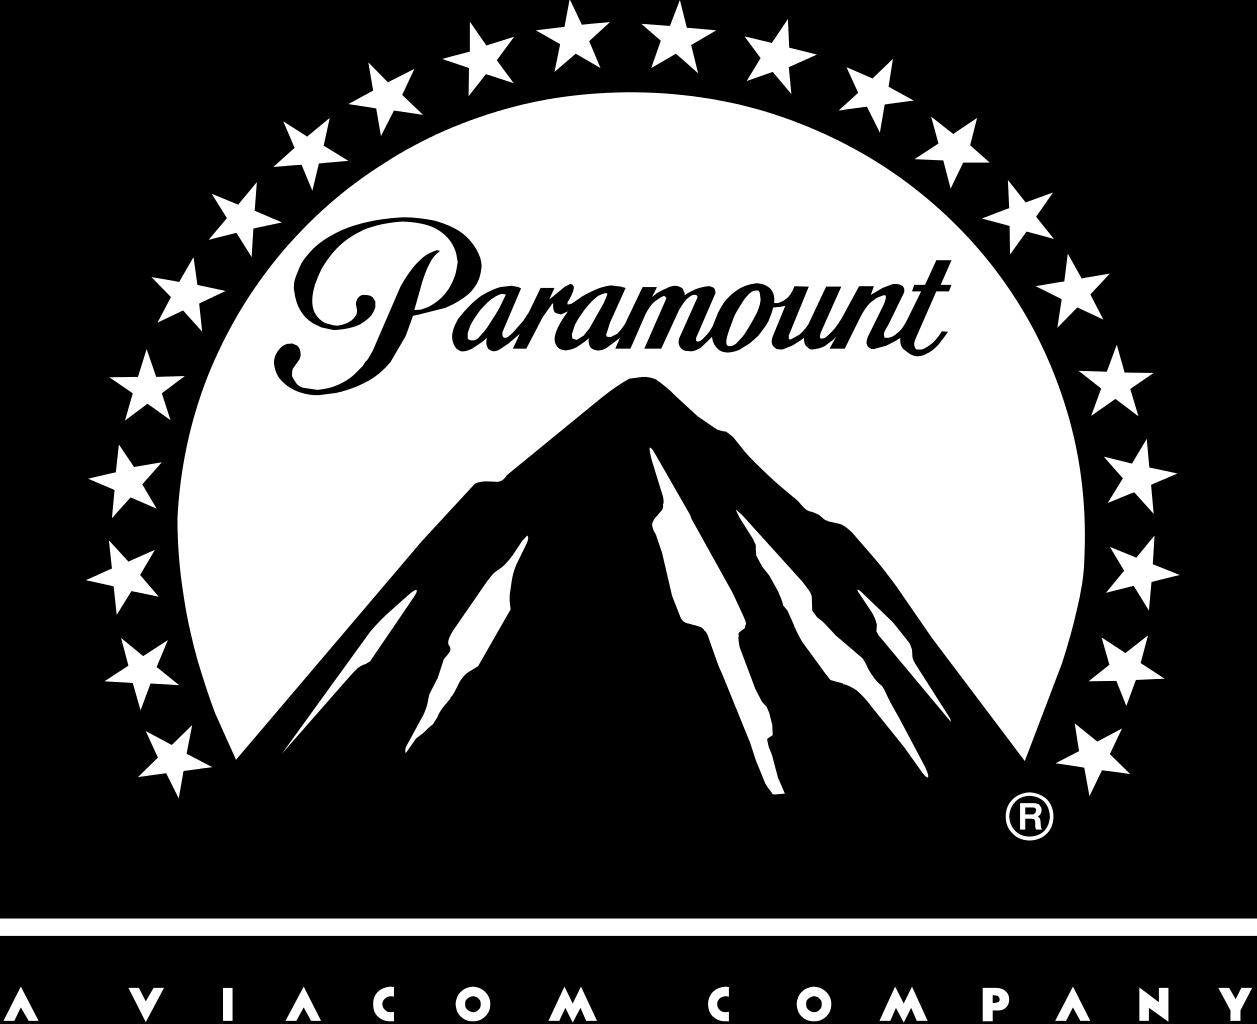 1257x1024 Image Result For Paramount Pictures Logo Presentation Images